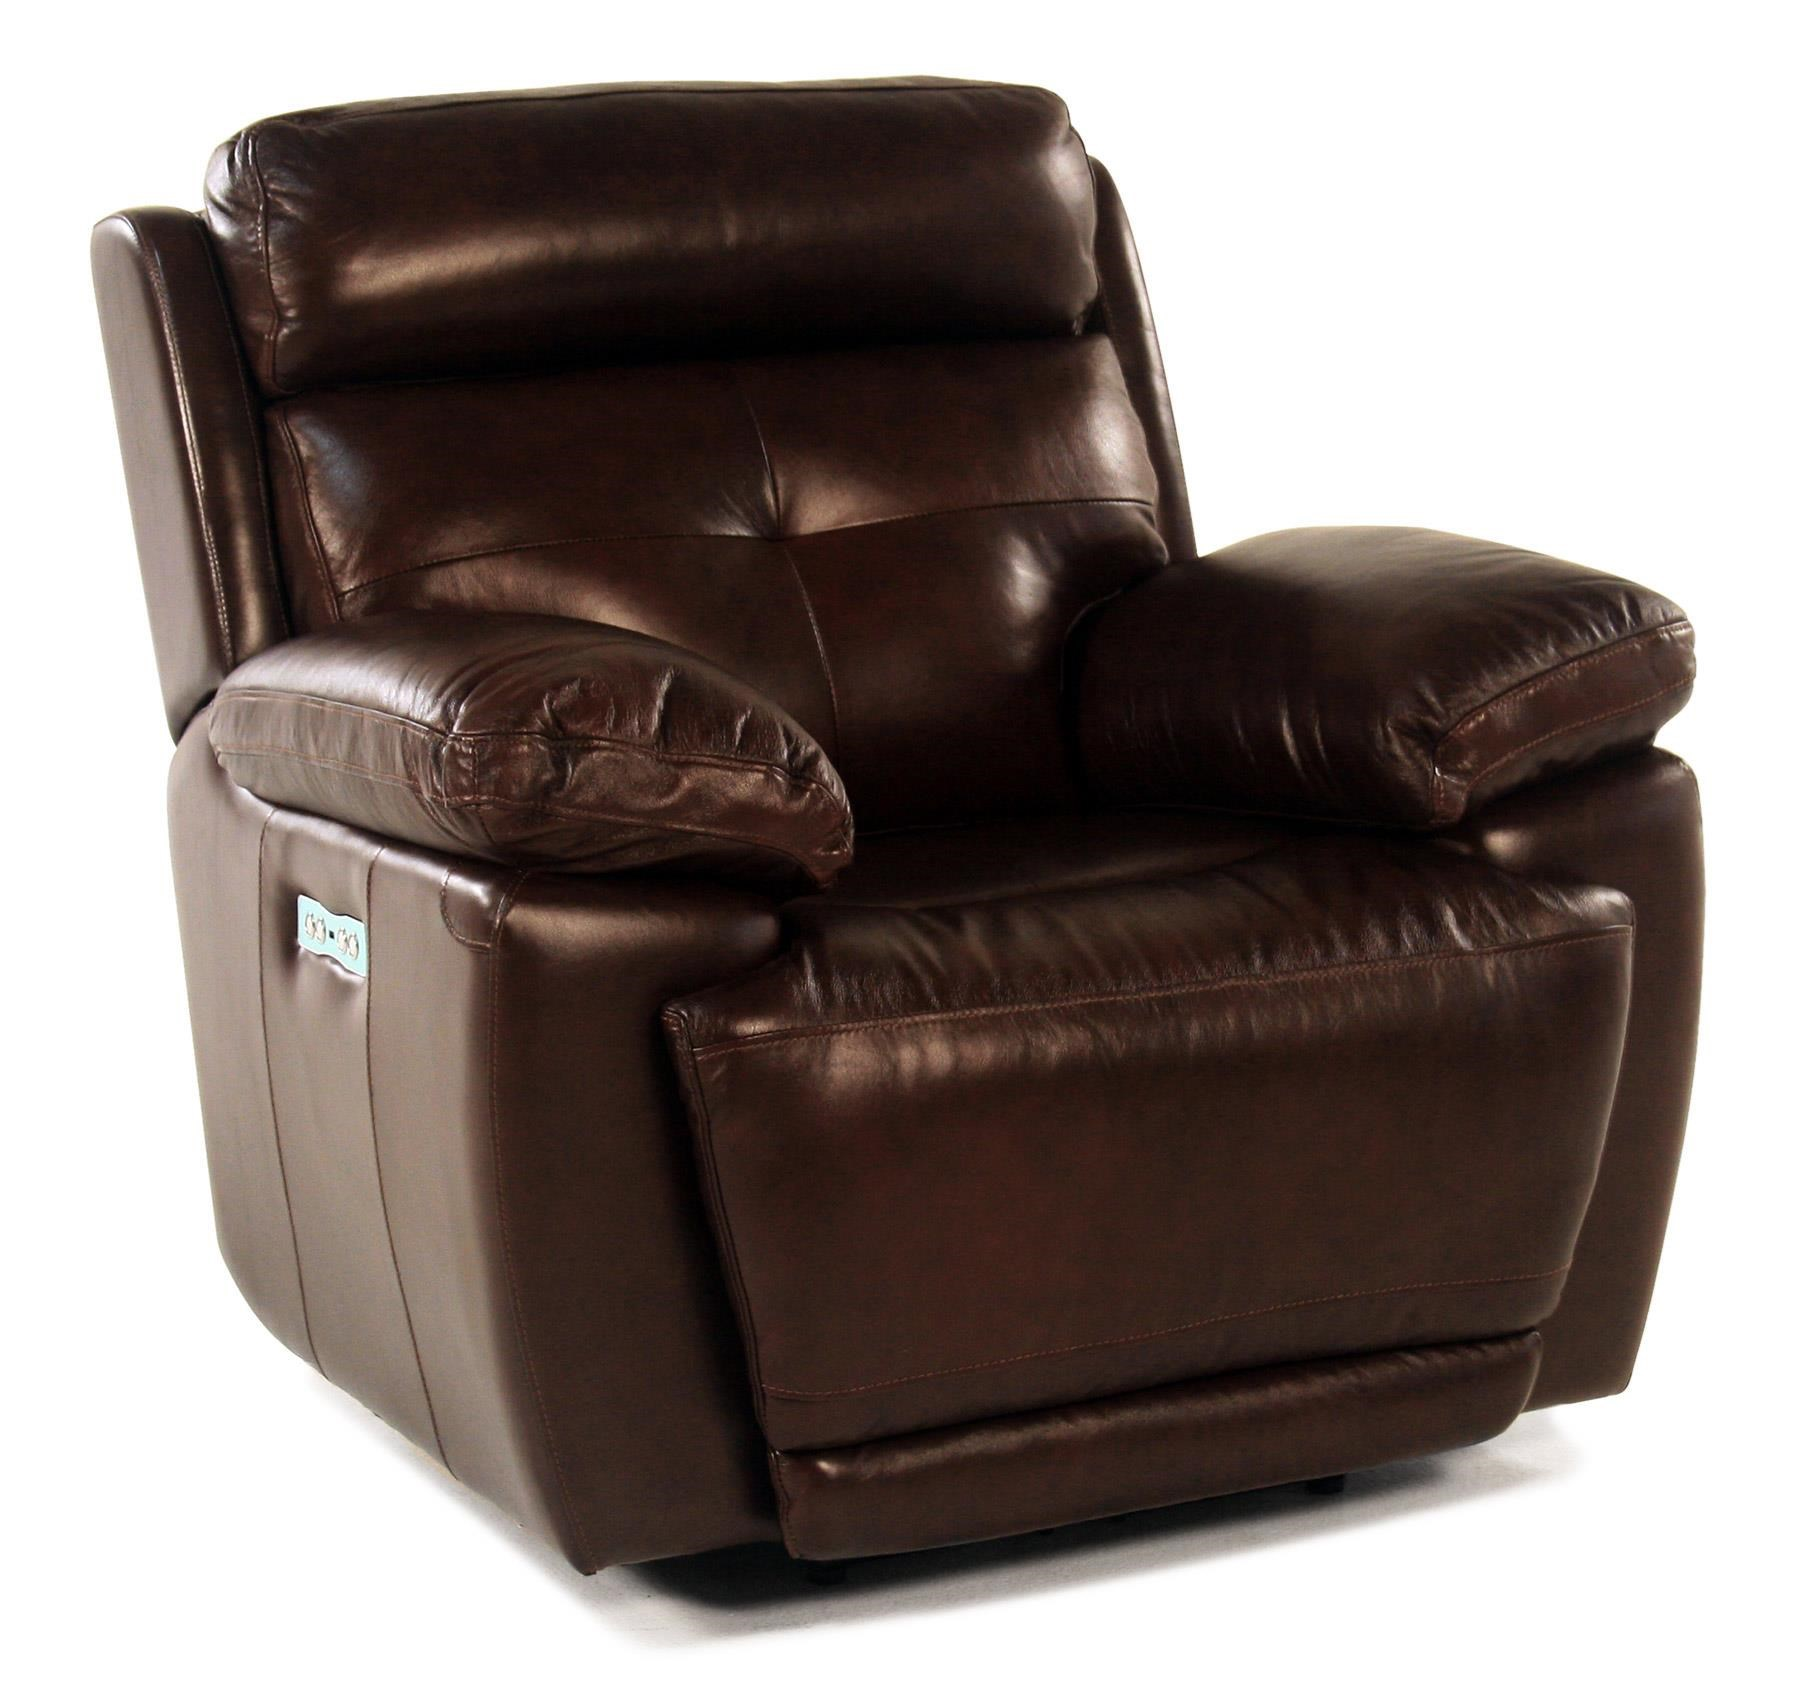 Loft Leather Jasper Power Leather Recliner - Item Number: E1268-319